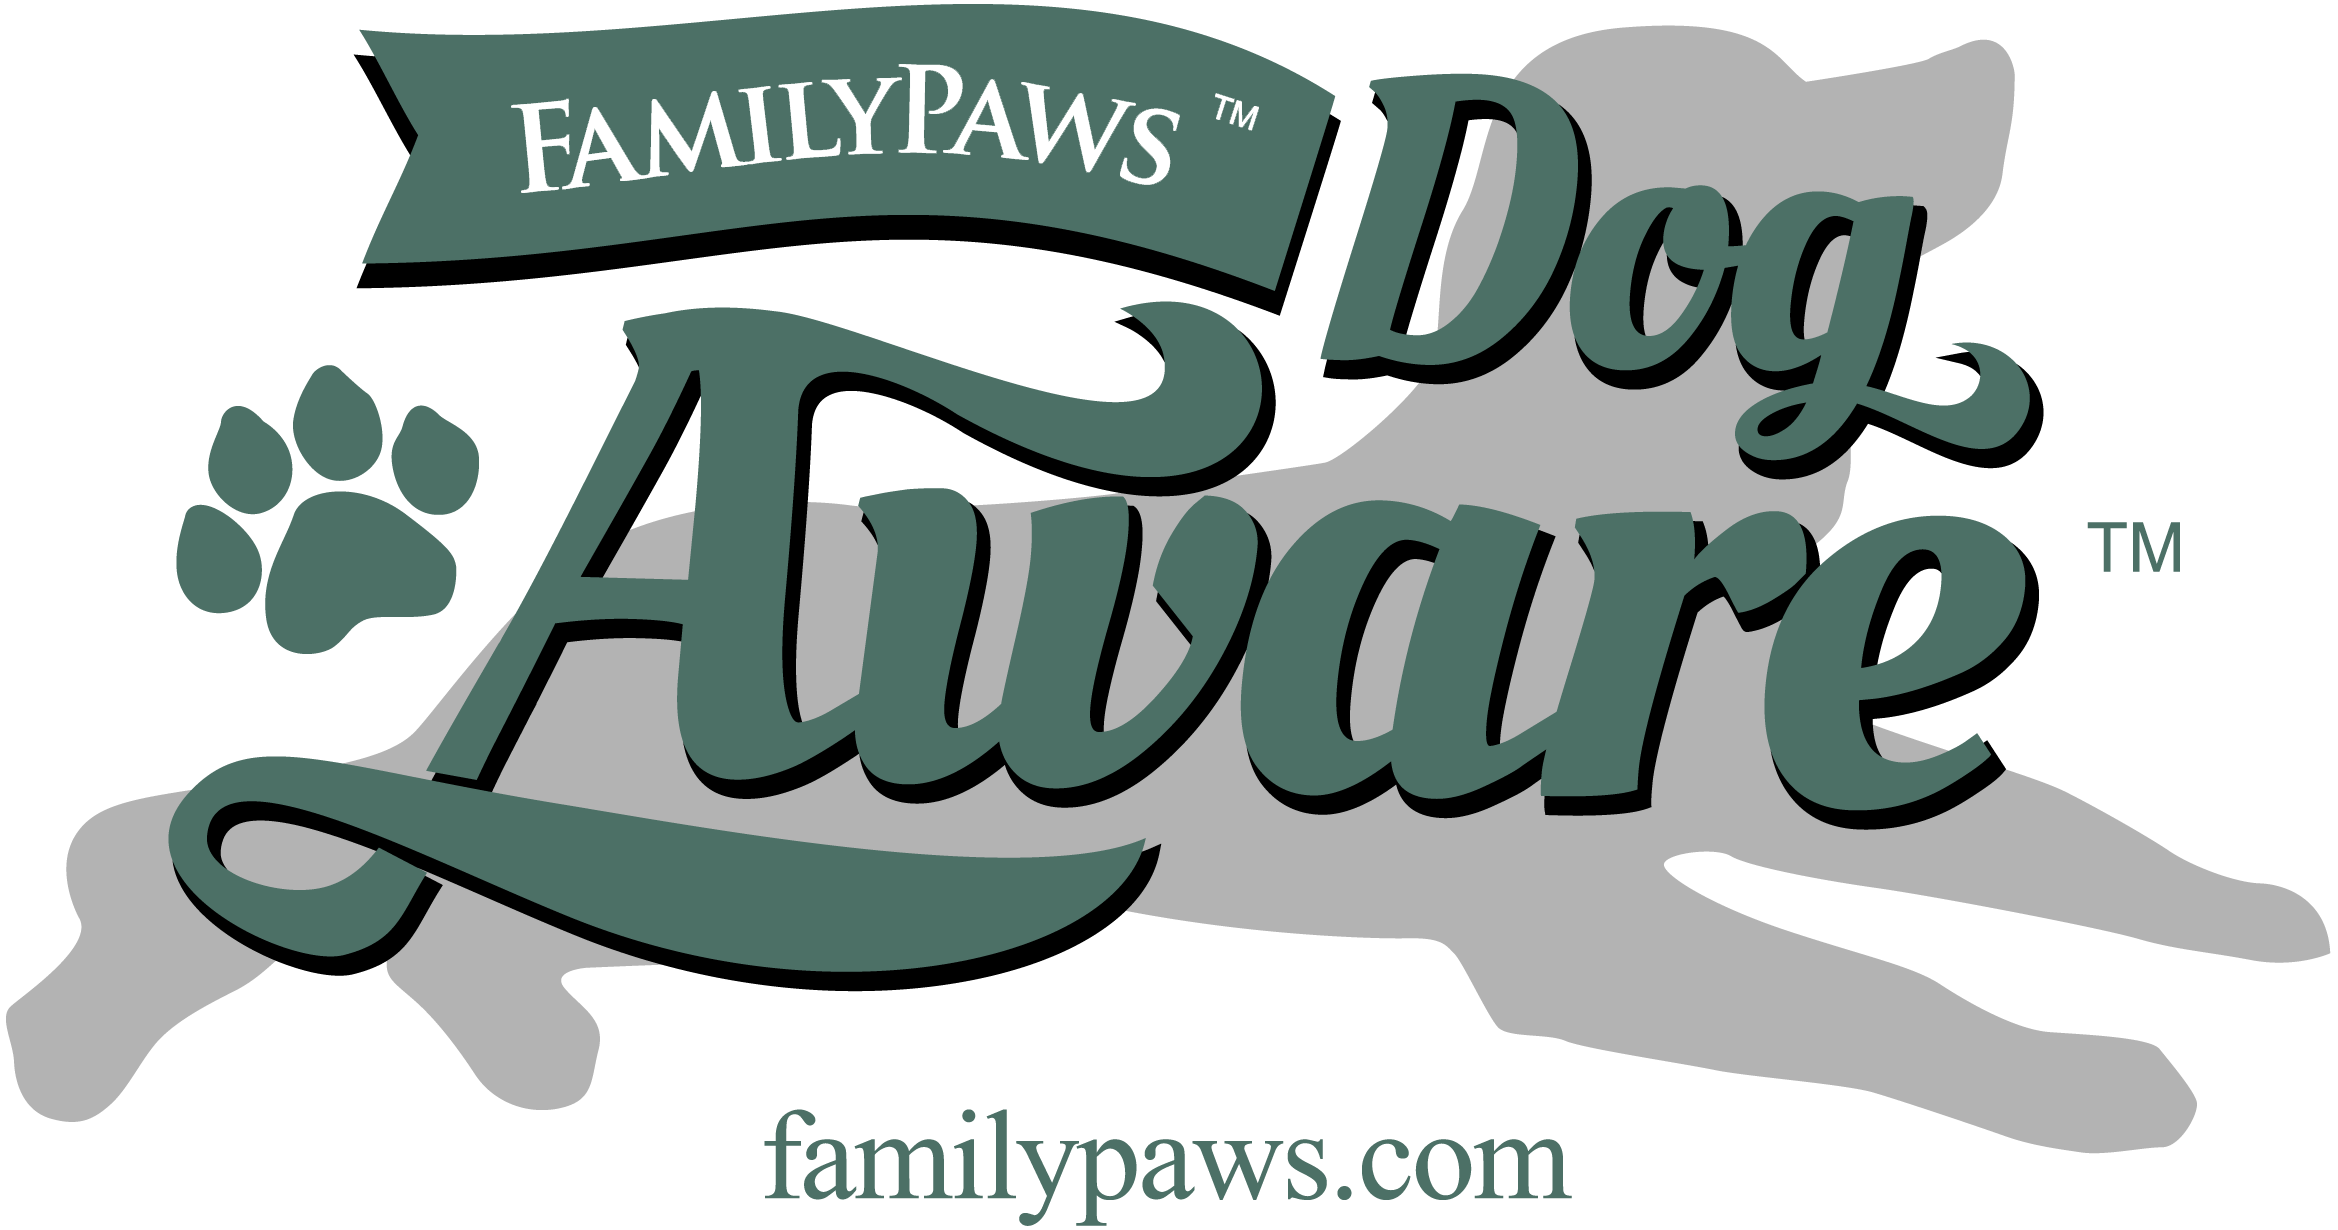 Dog sniffing ground clipart free banner royalty free download Uncategorized Archives - Family Paws Parent Education banner royalty free download